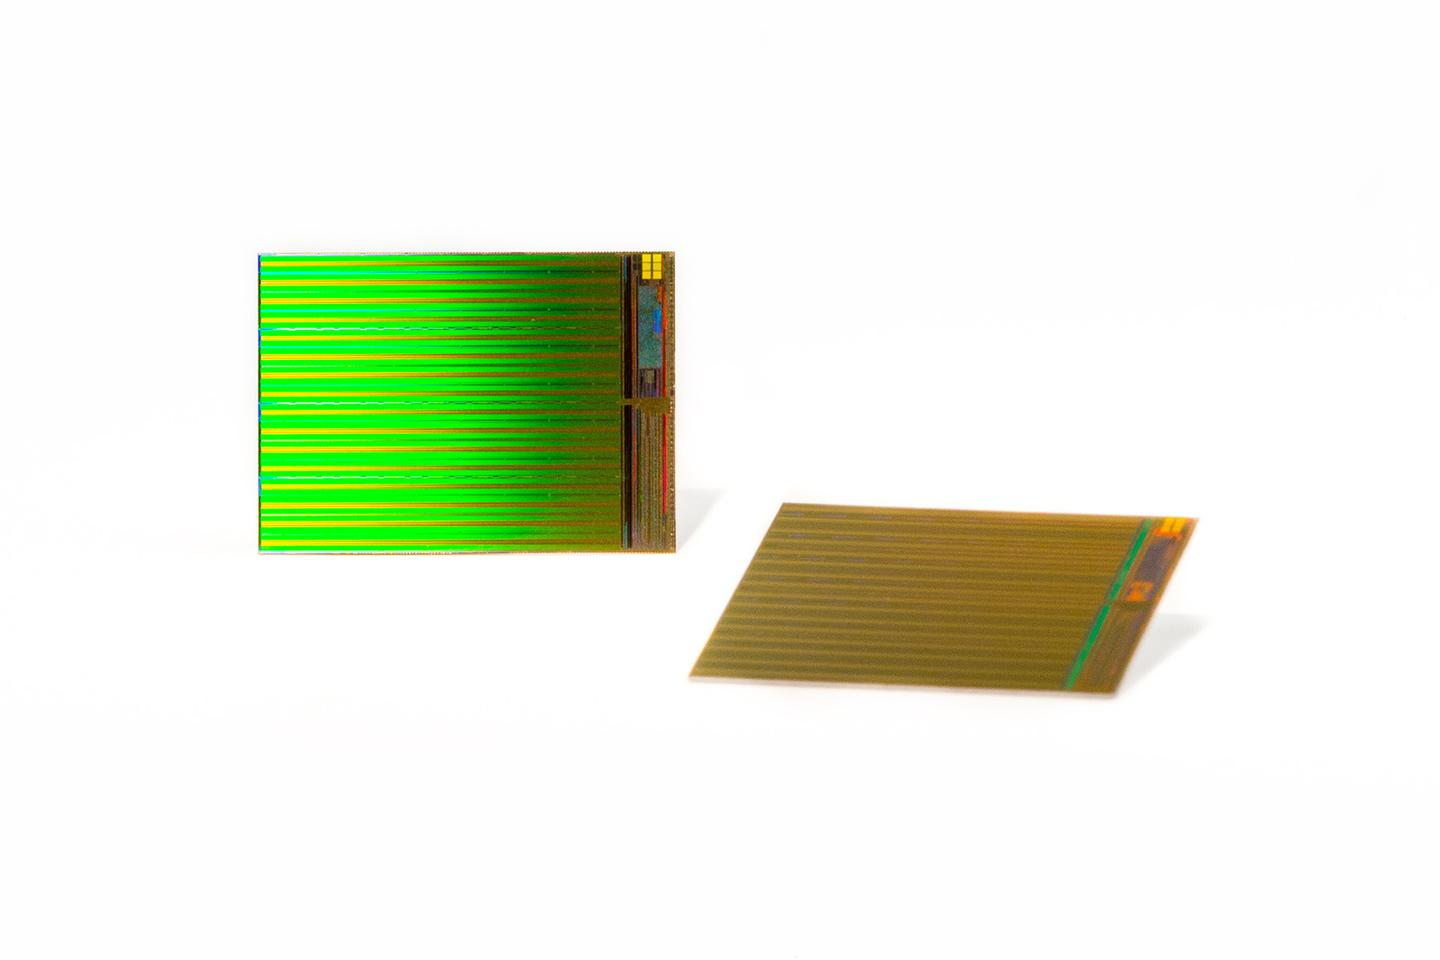 The new 3D NAND die extends Moore's law to flash storage (Image: Intel)